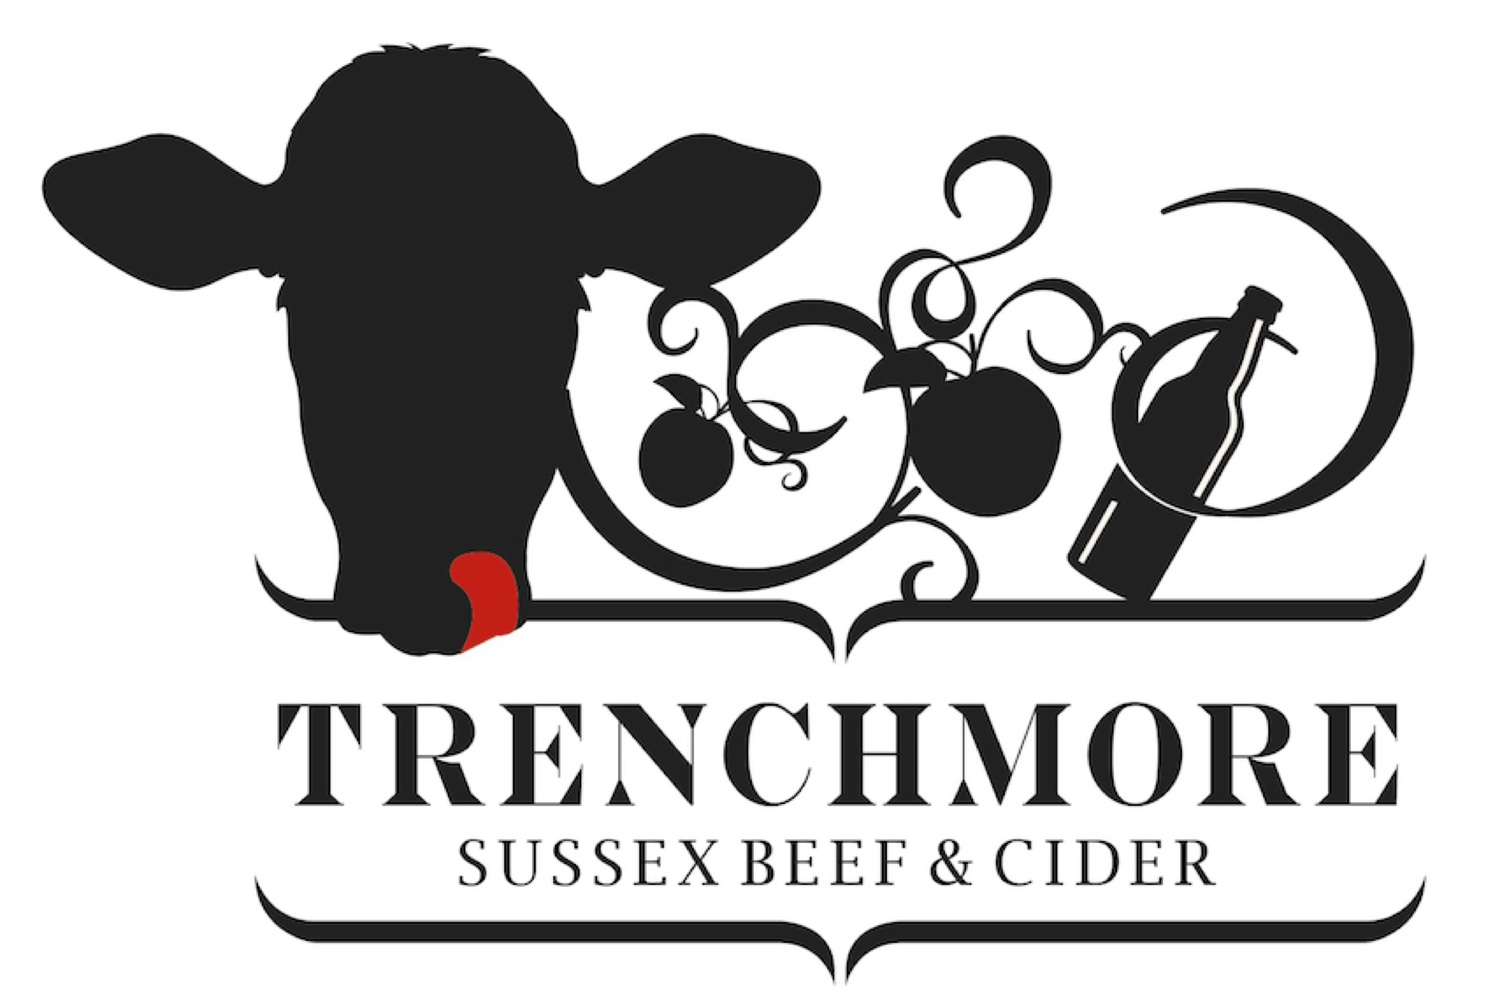 Trenchmore Farm in